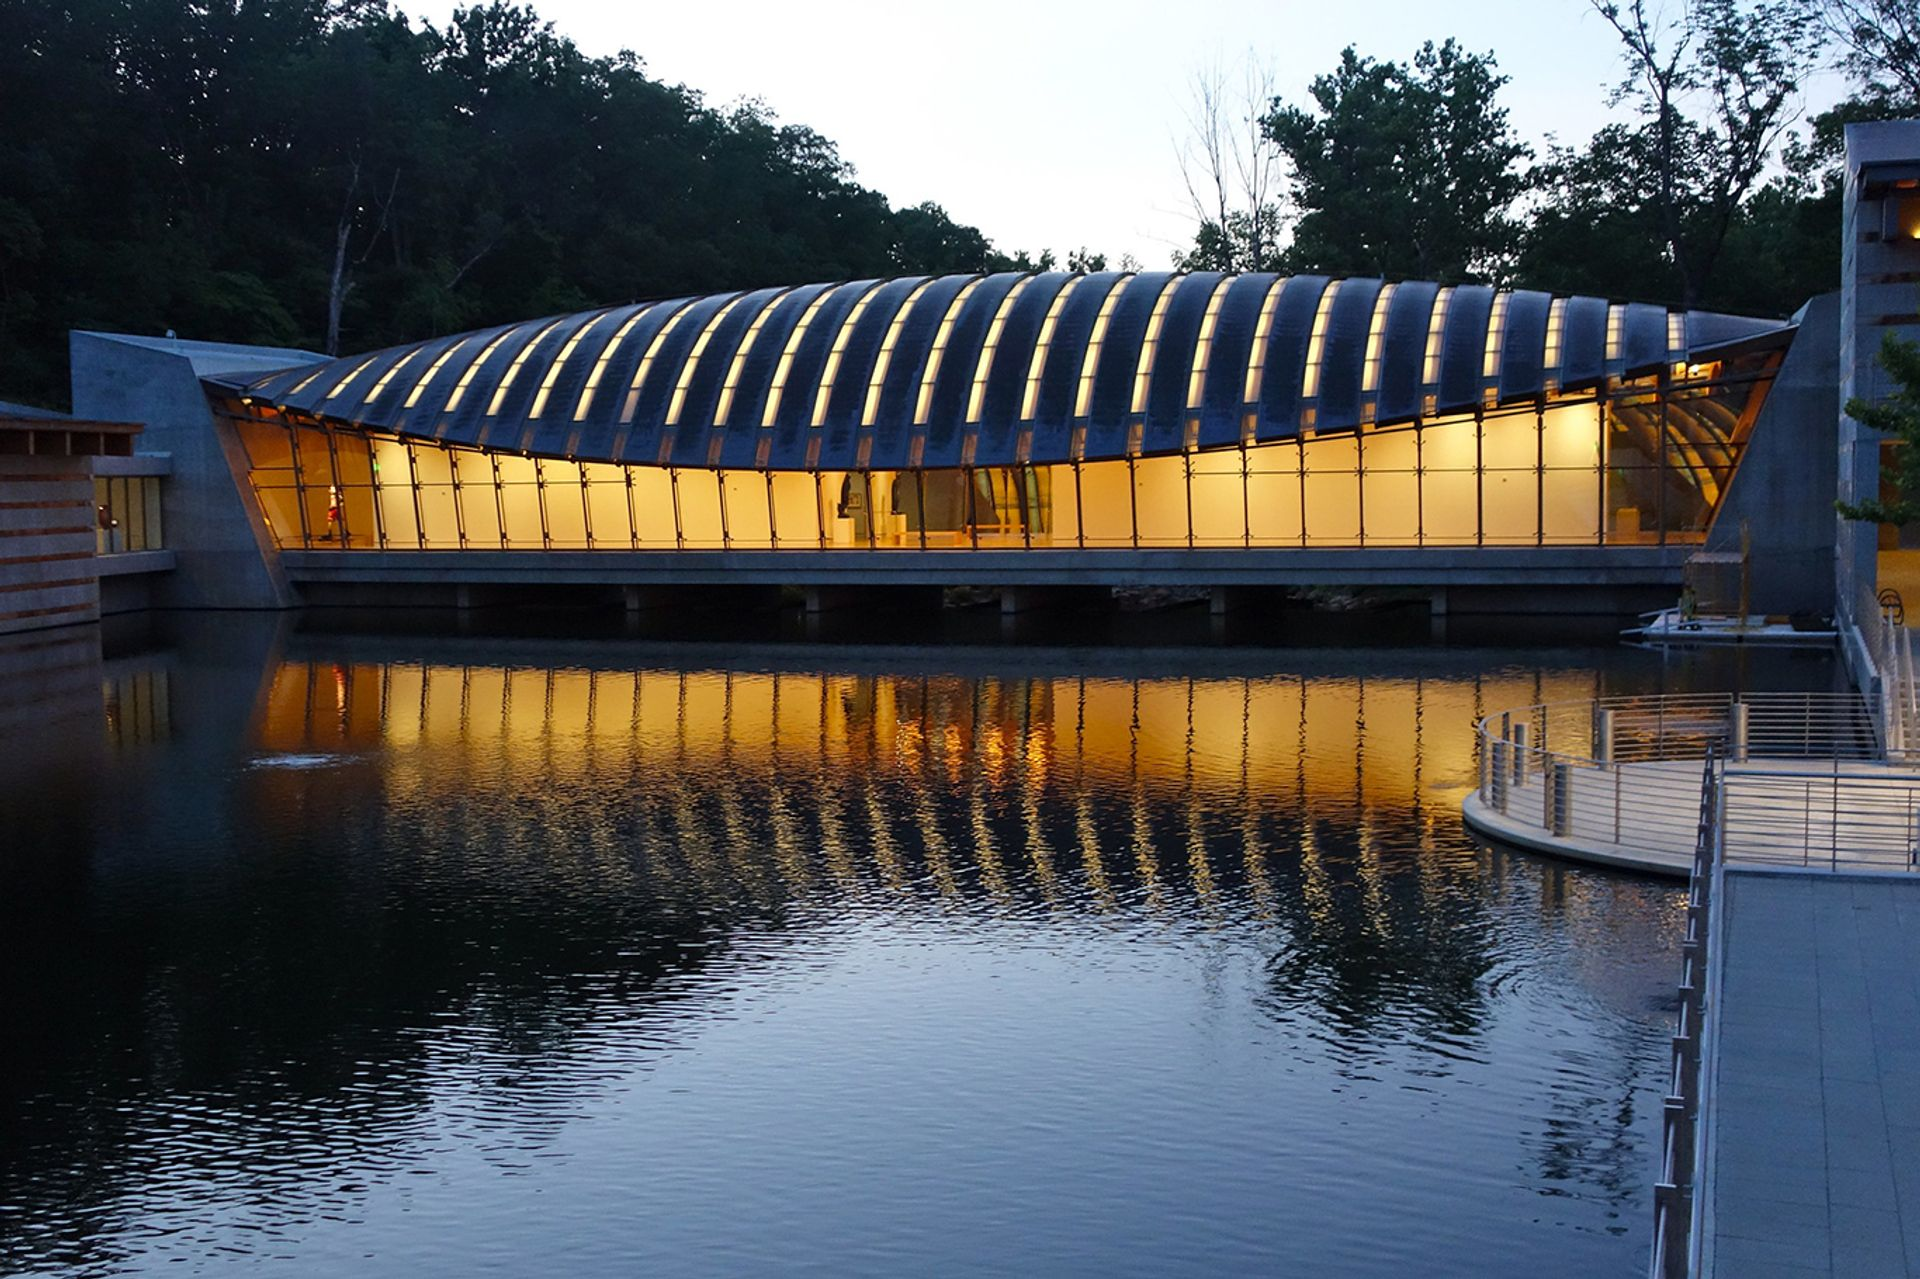 The Crystal Bridges Museum of American Art, which reopened last June, made the Top 10 list of American museums ranked for attendance in 2020 Kevin Dooley